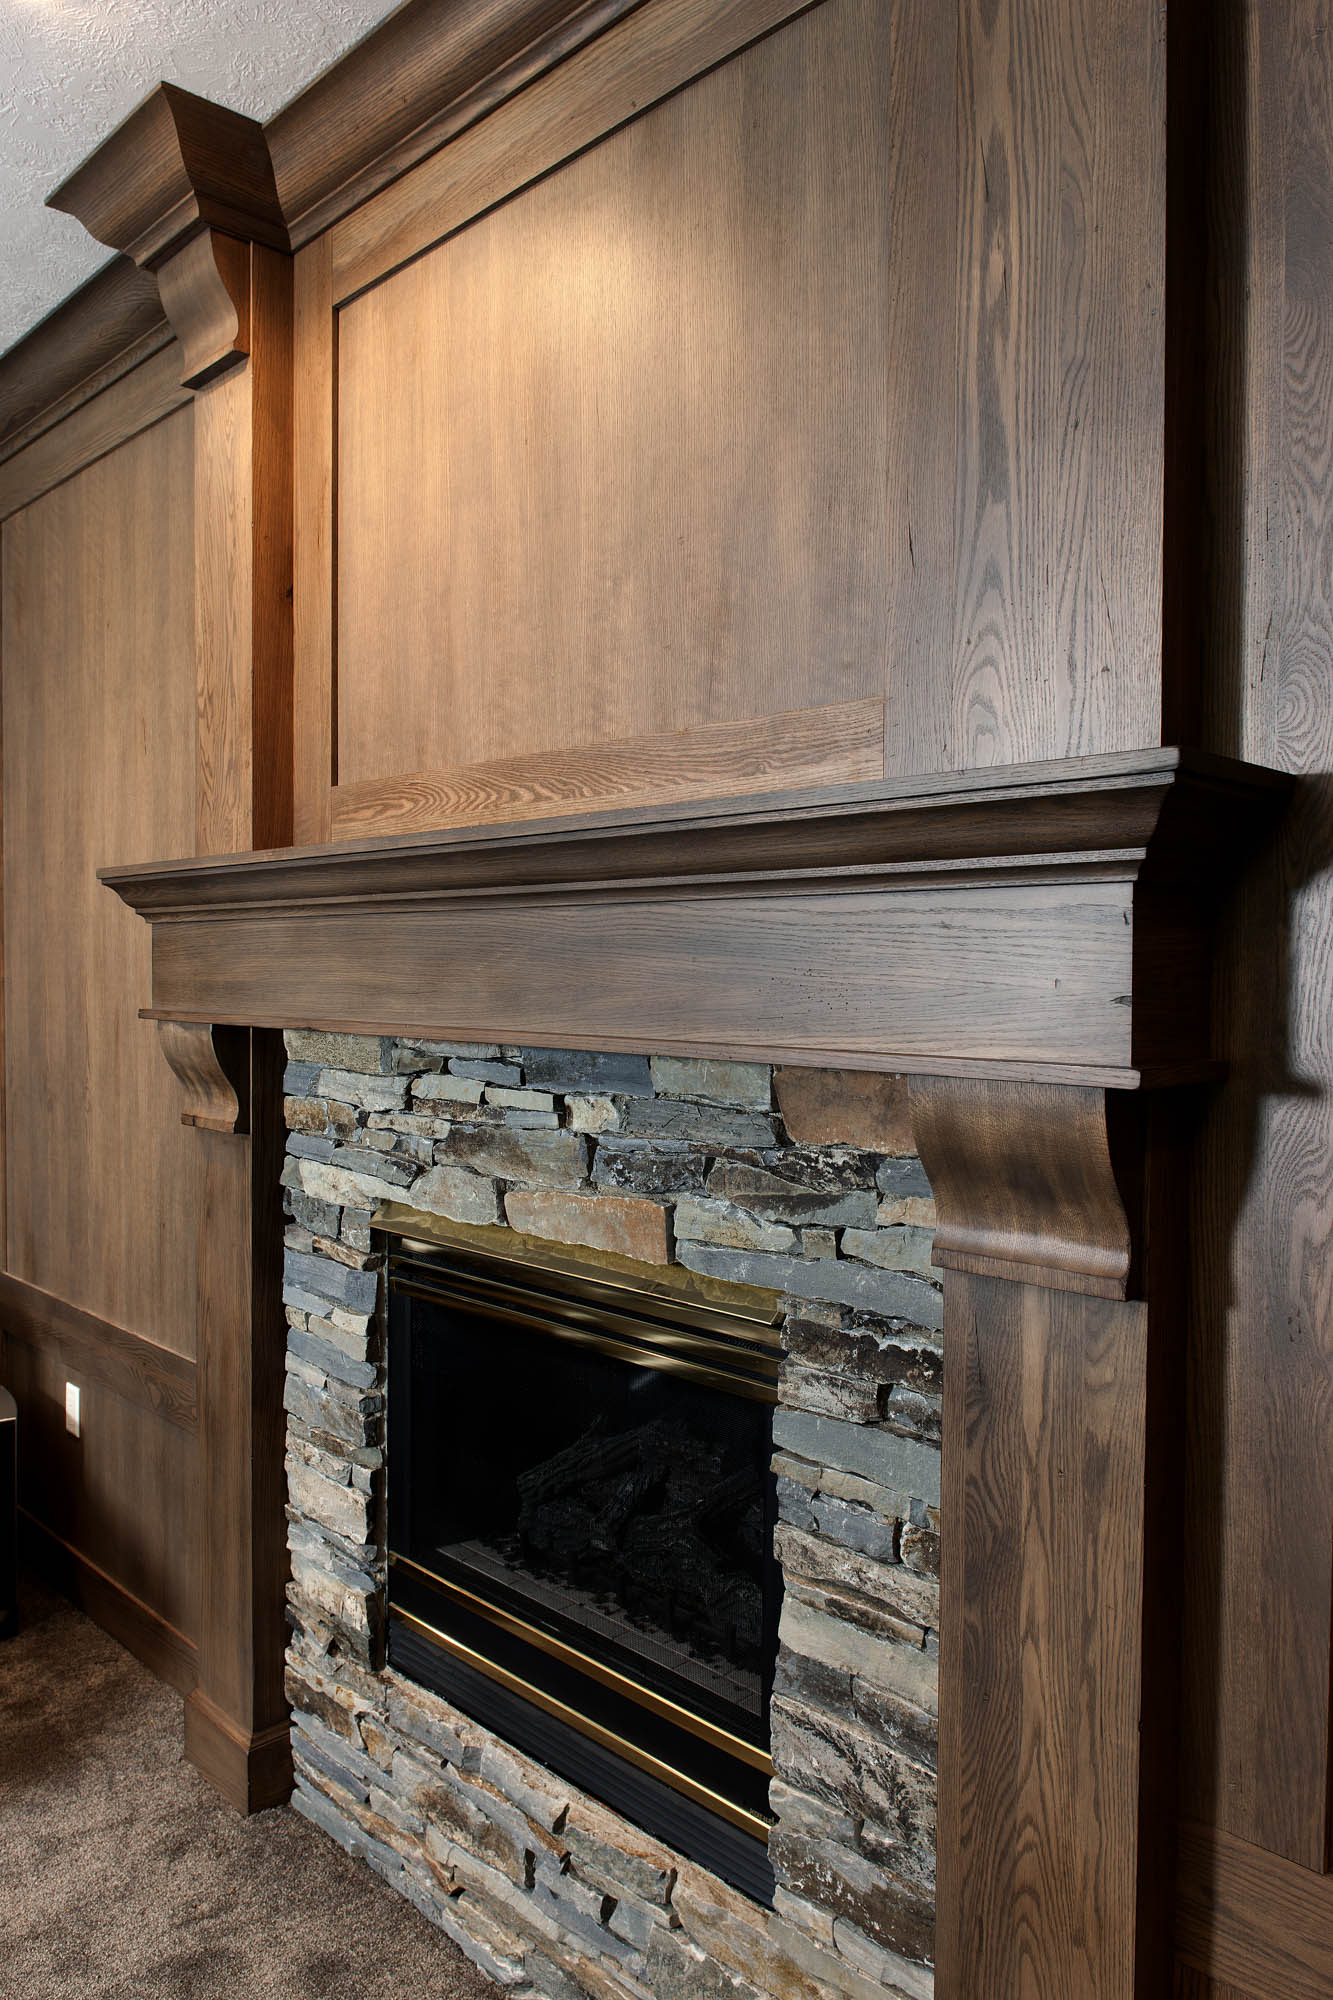 Stained family room 2 fireplace surround in Vintage Driftwood by Showplace Cabinetry